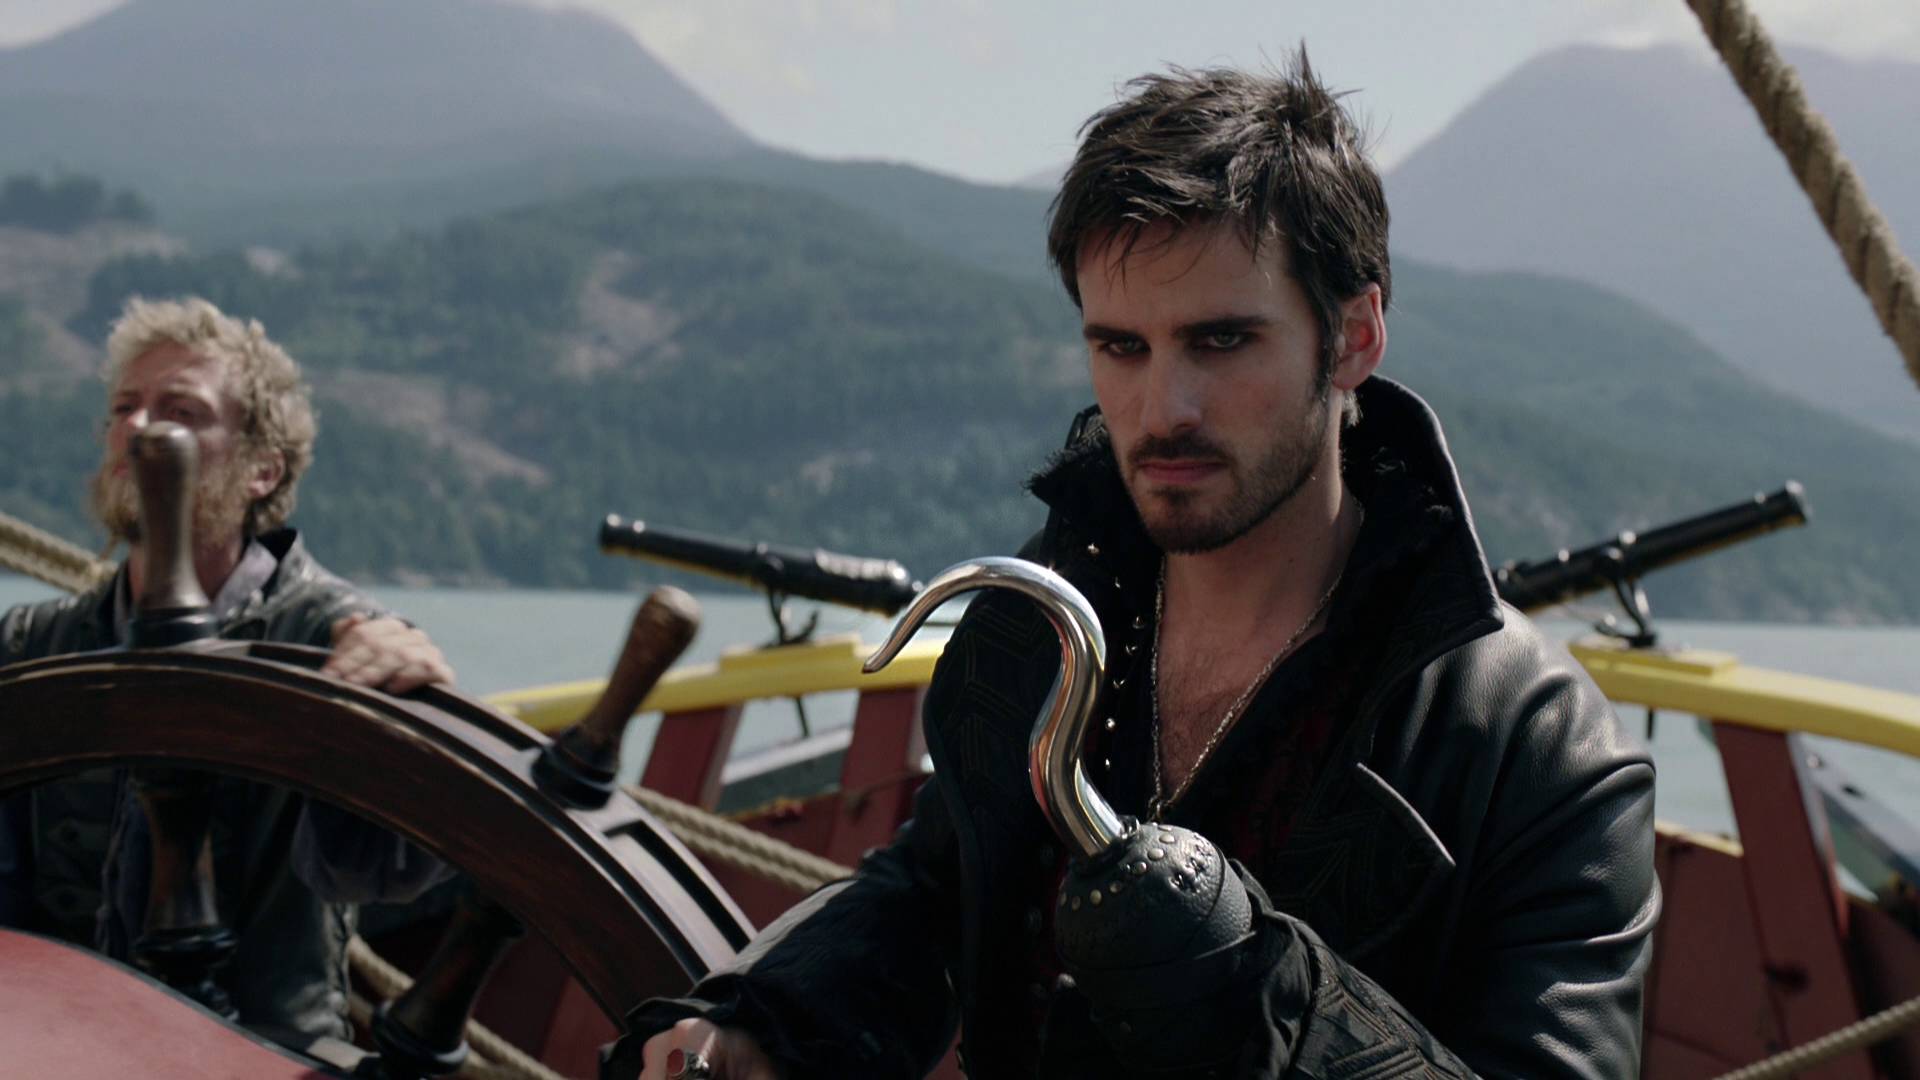 Does hook and emma hook up